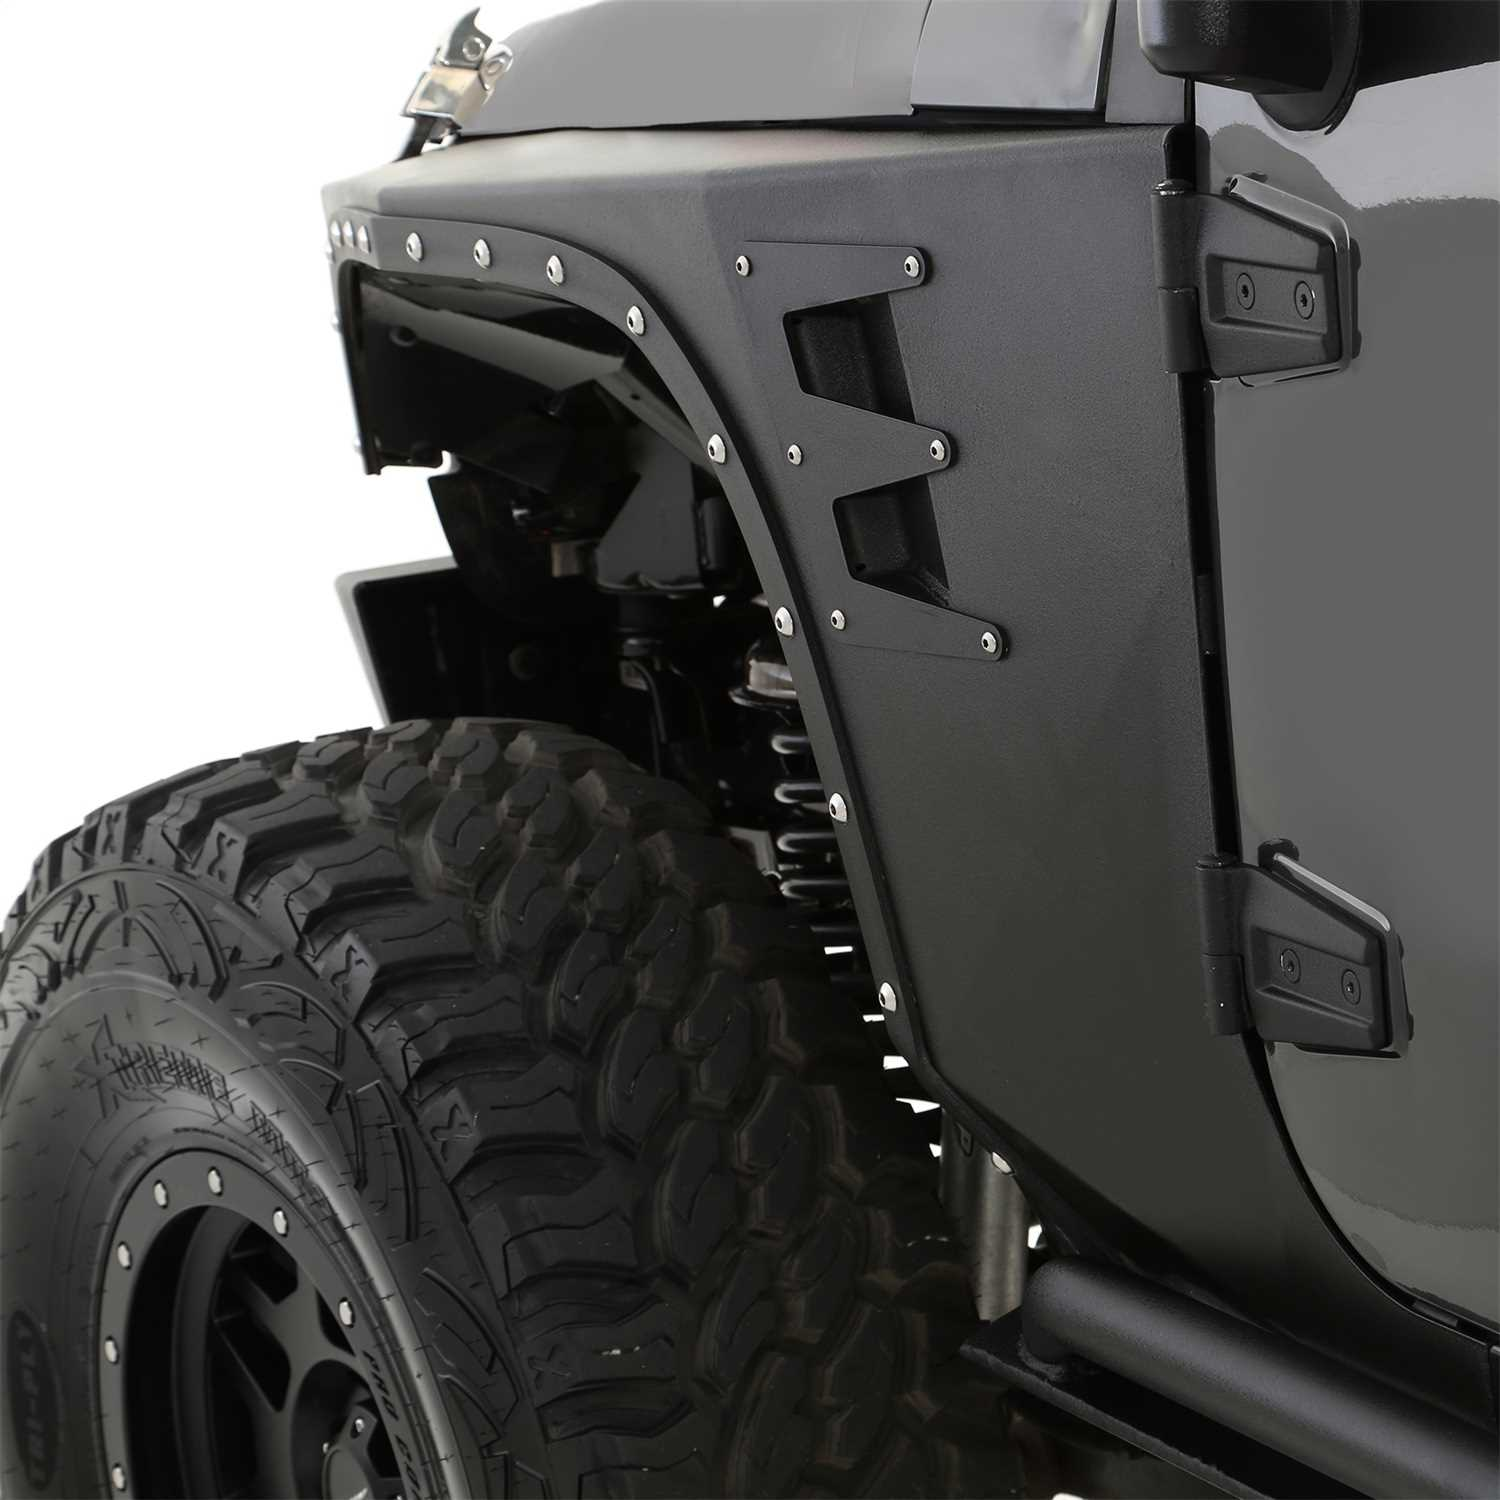 Vehicle Fitment [View Fitment Guide]